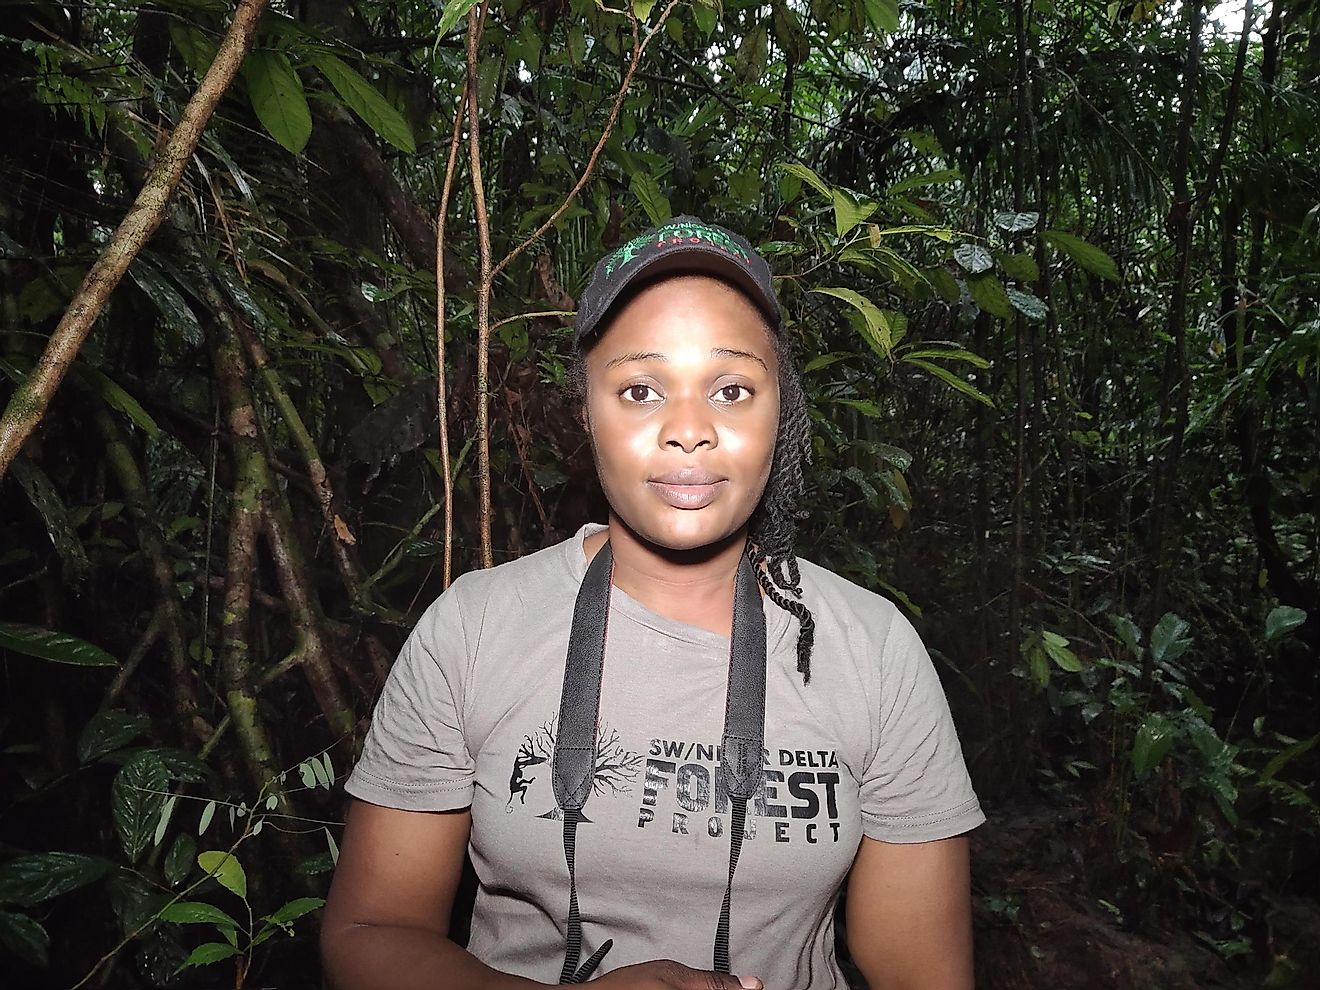 Rachel Ashegbofe Ikemeh, Project Director at SW/Niger Delta Forest Project